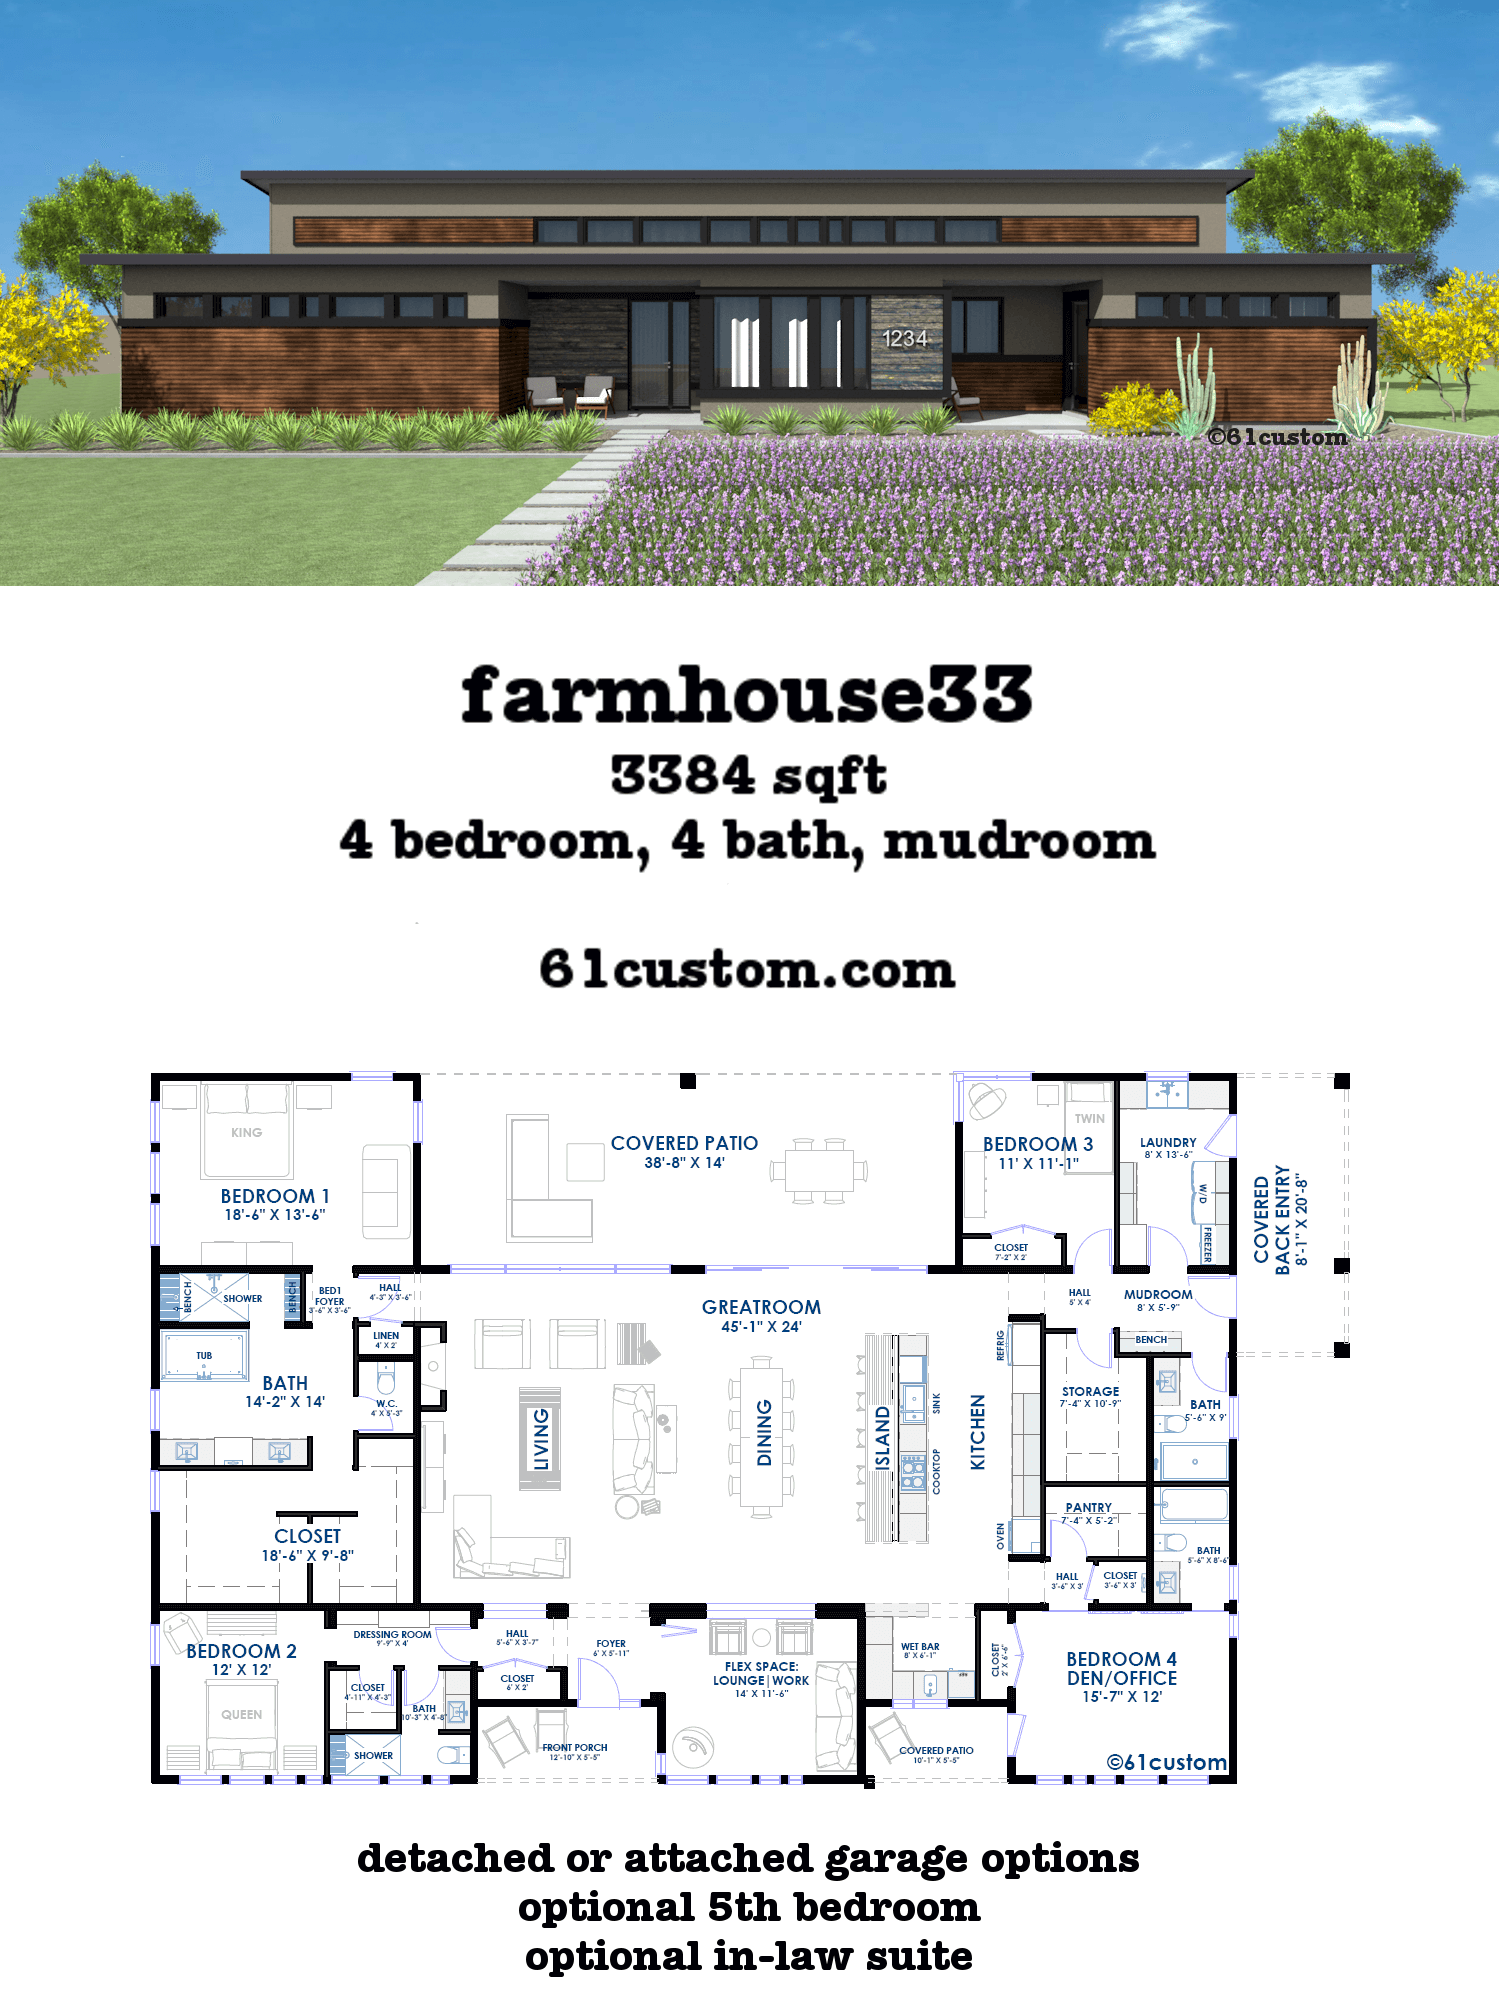 Farmhouse33 modern farmhouse plan farmhouse33 houseplan 61custom com